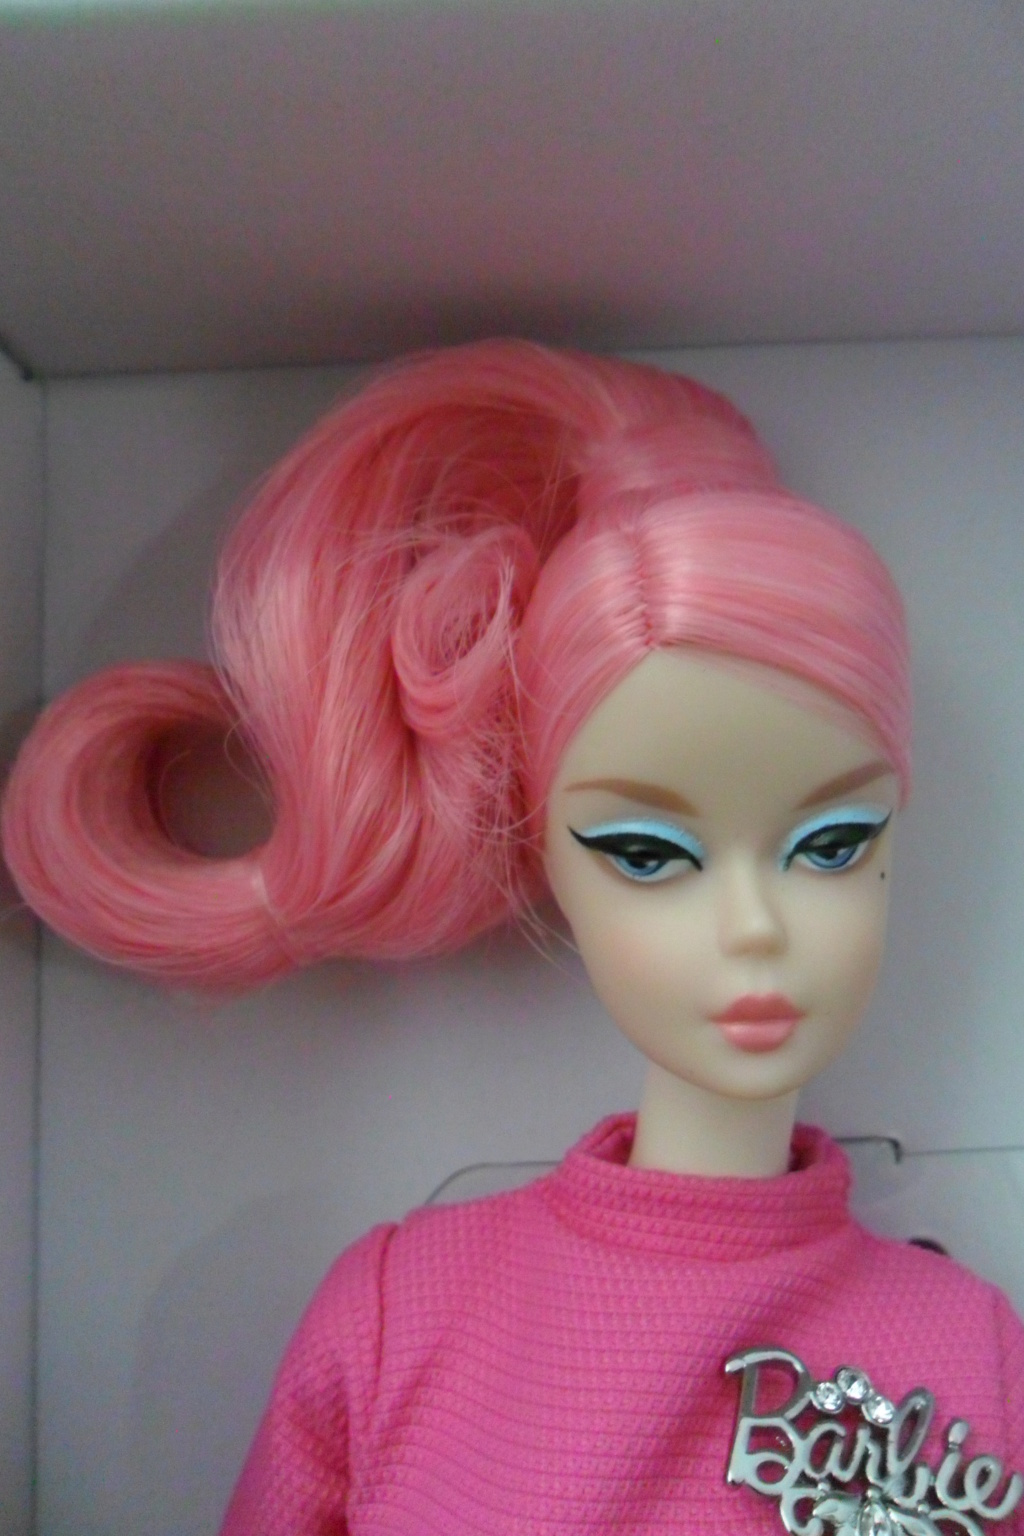 Mon premier amour poupesque : Barbie (Marni Senofonte, X Files et fashionistas) - Page 5 Sam_9631